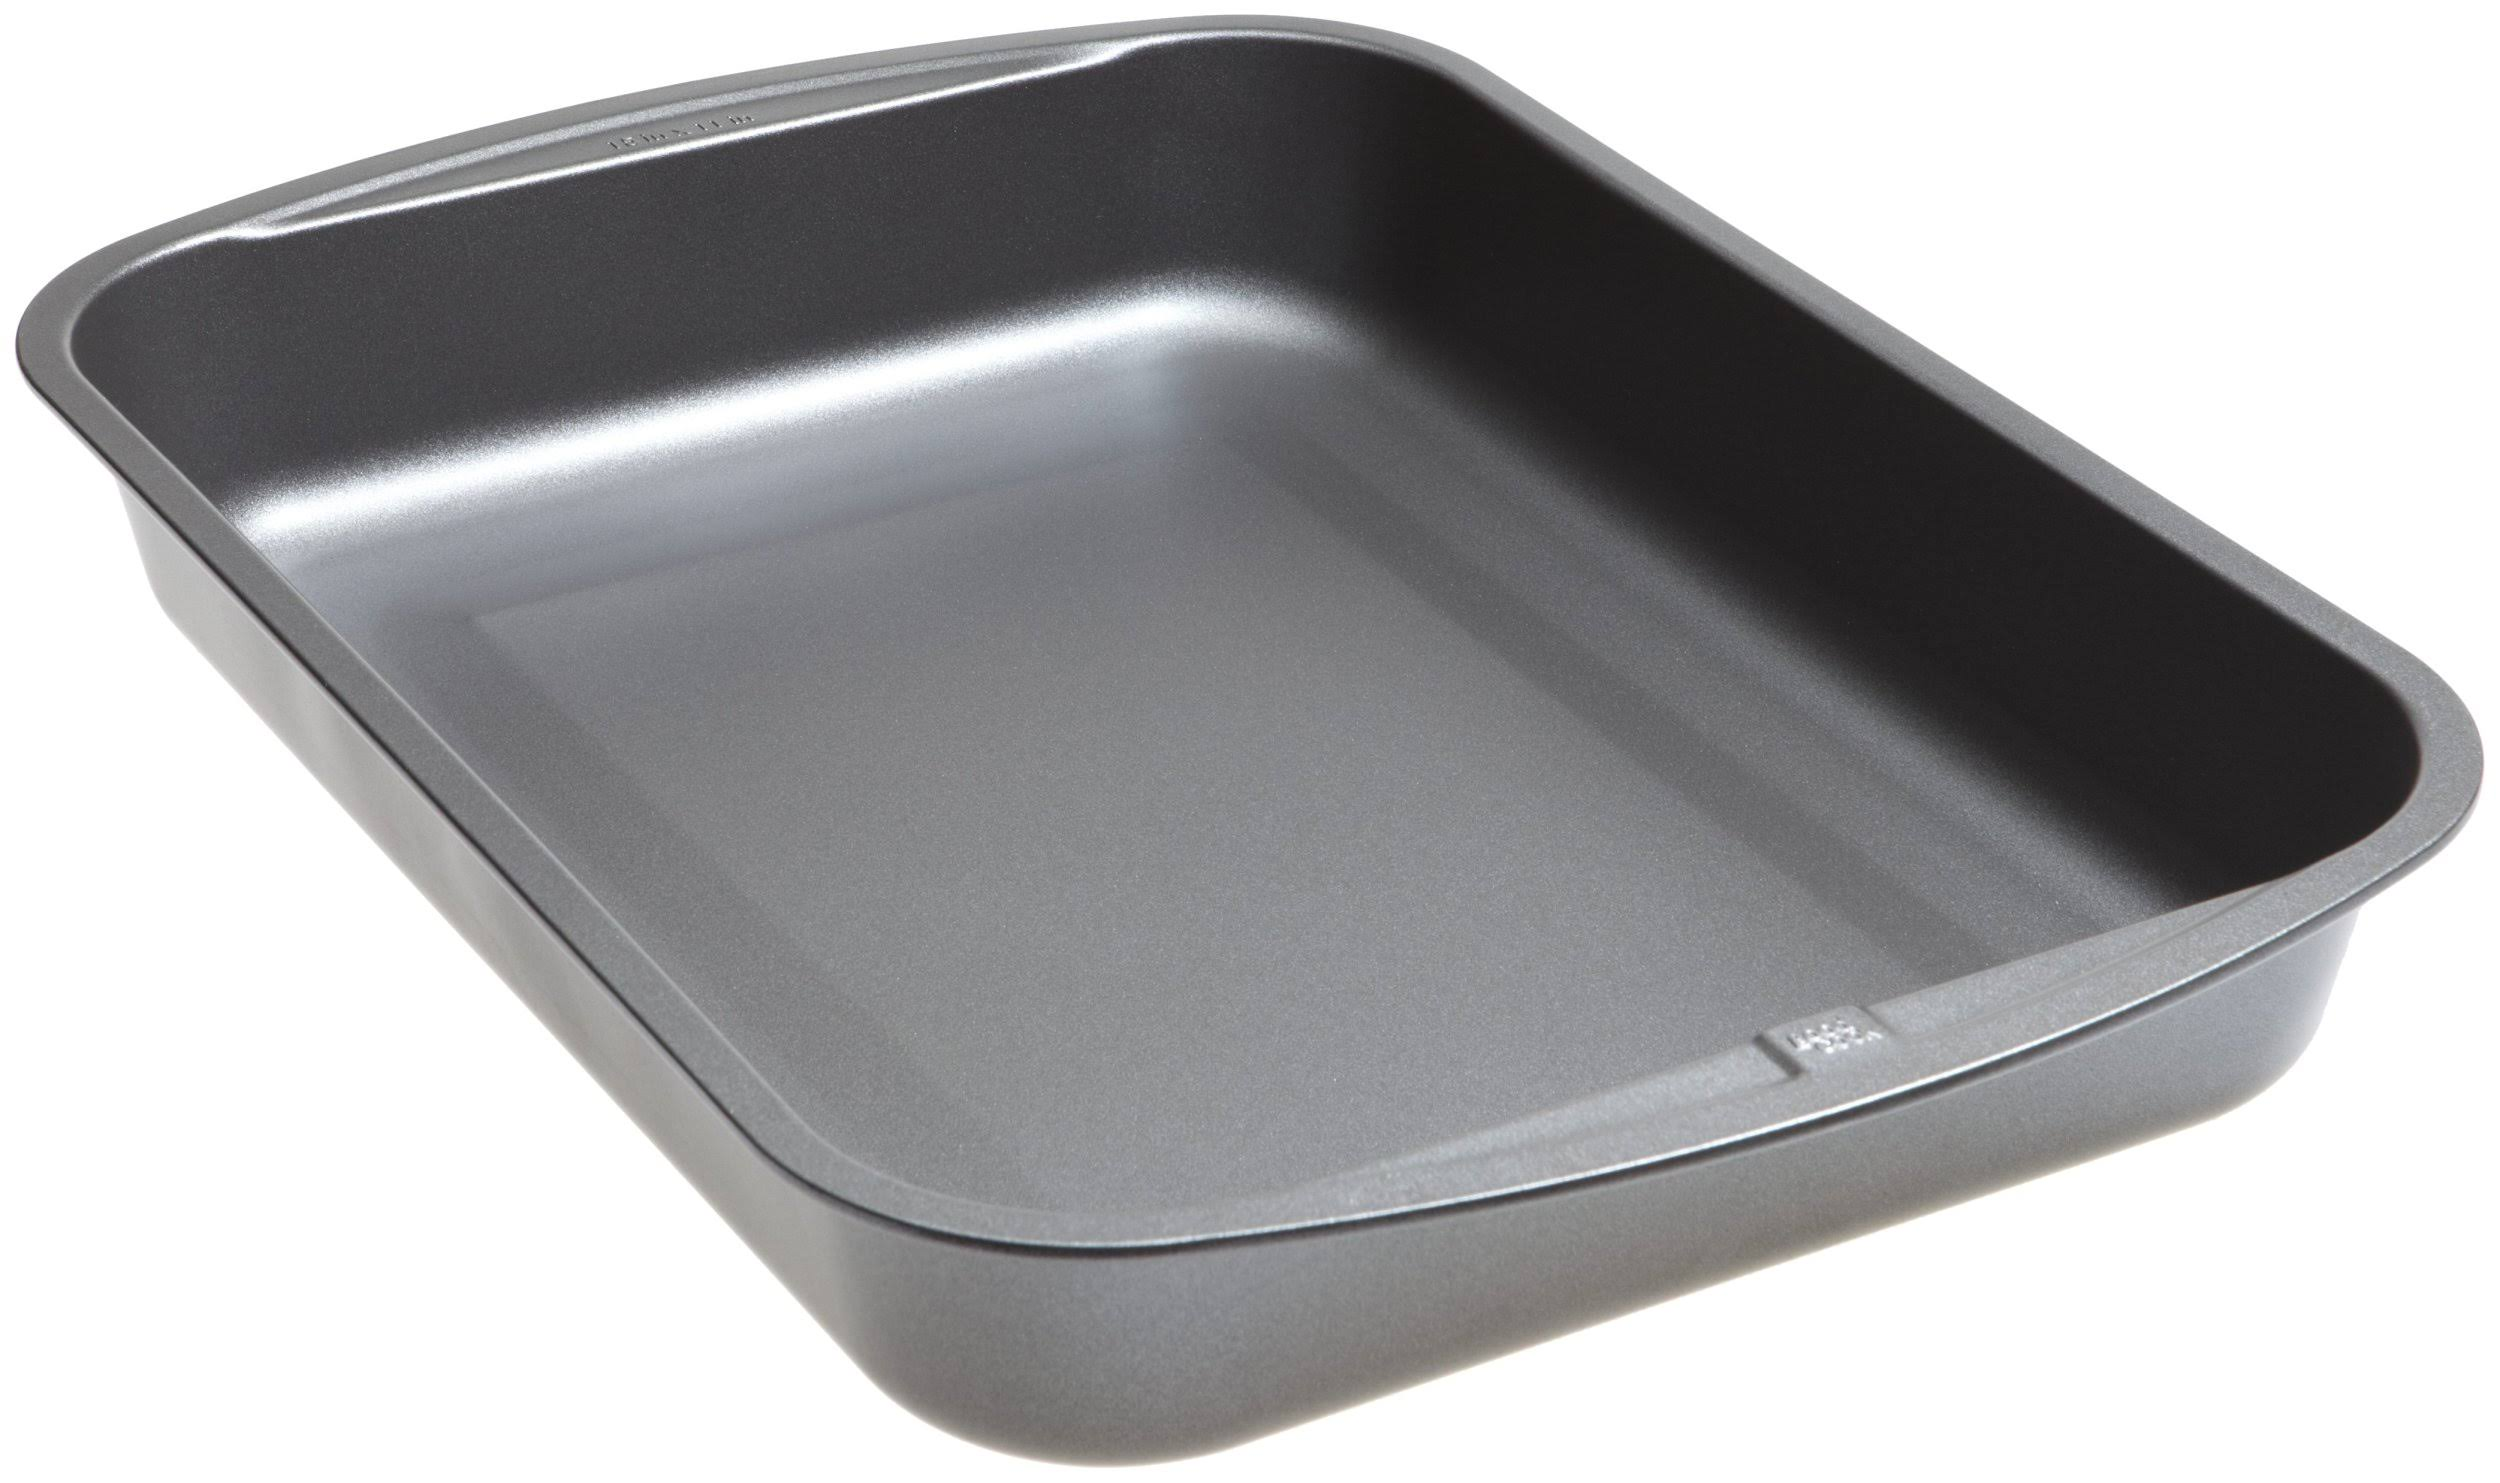 Good Cook Roast Pan, Large, 15 x 11 in